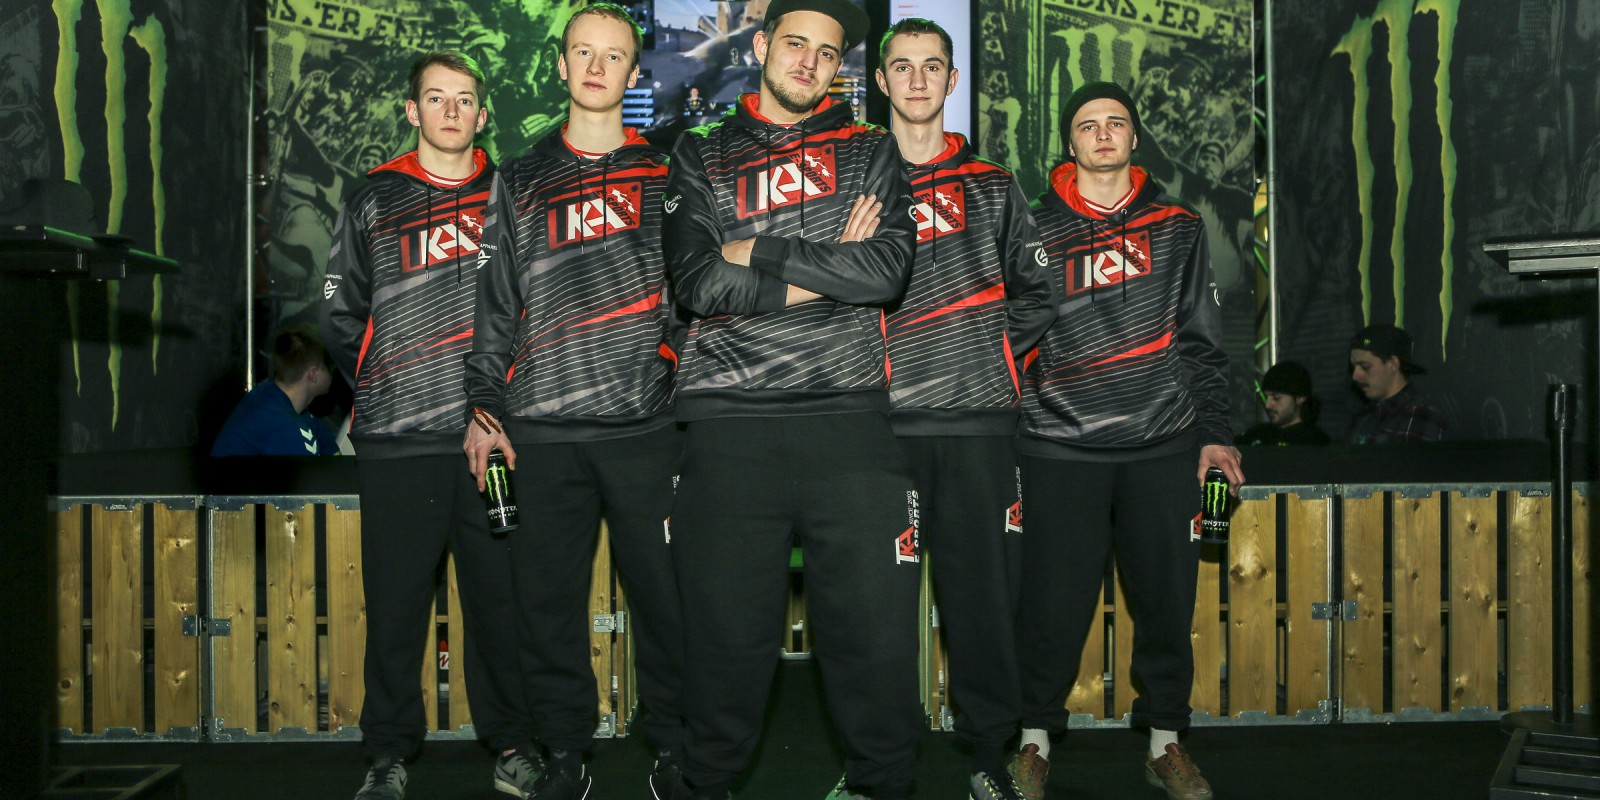 Pictures from Dreamhack Leibzig 2019